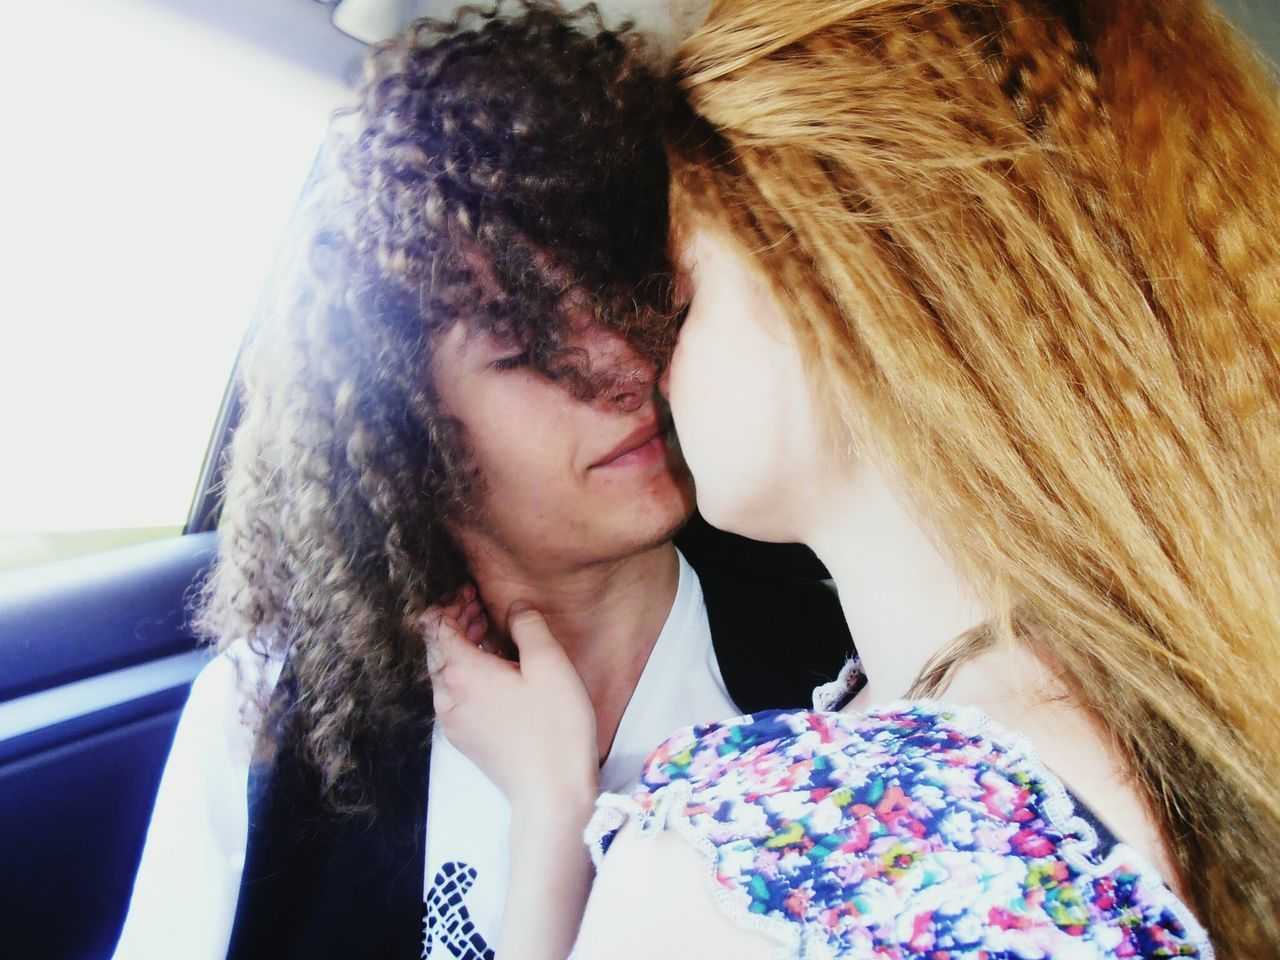 Couple kissing while traveling in car